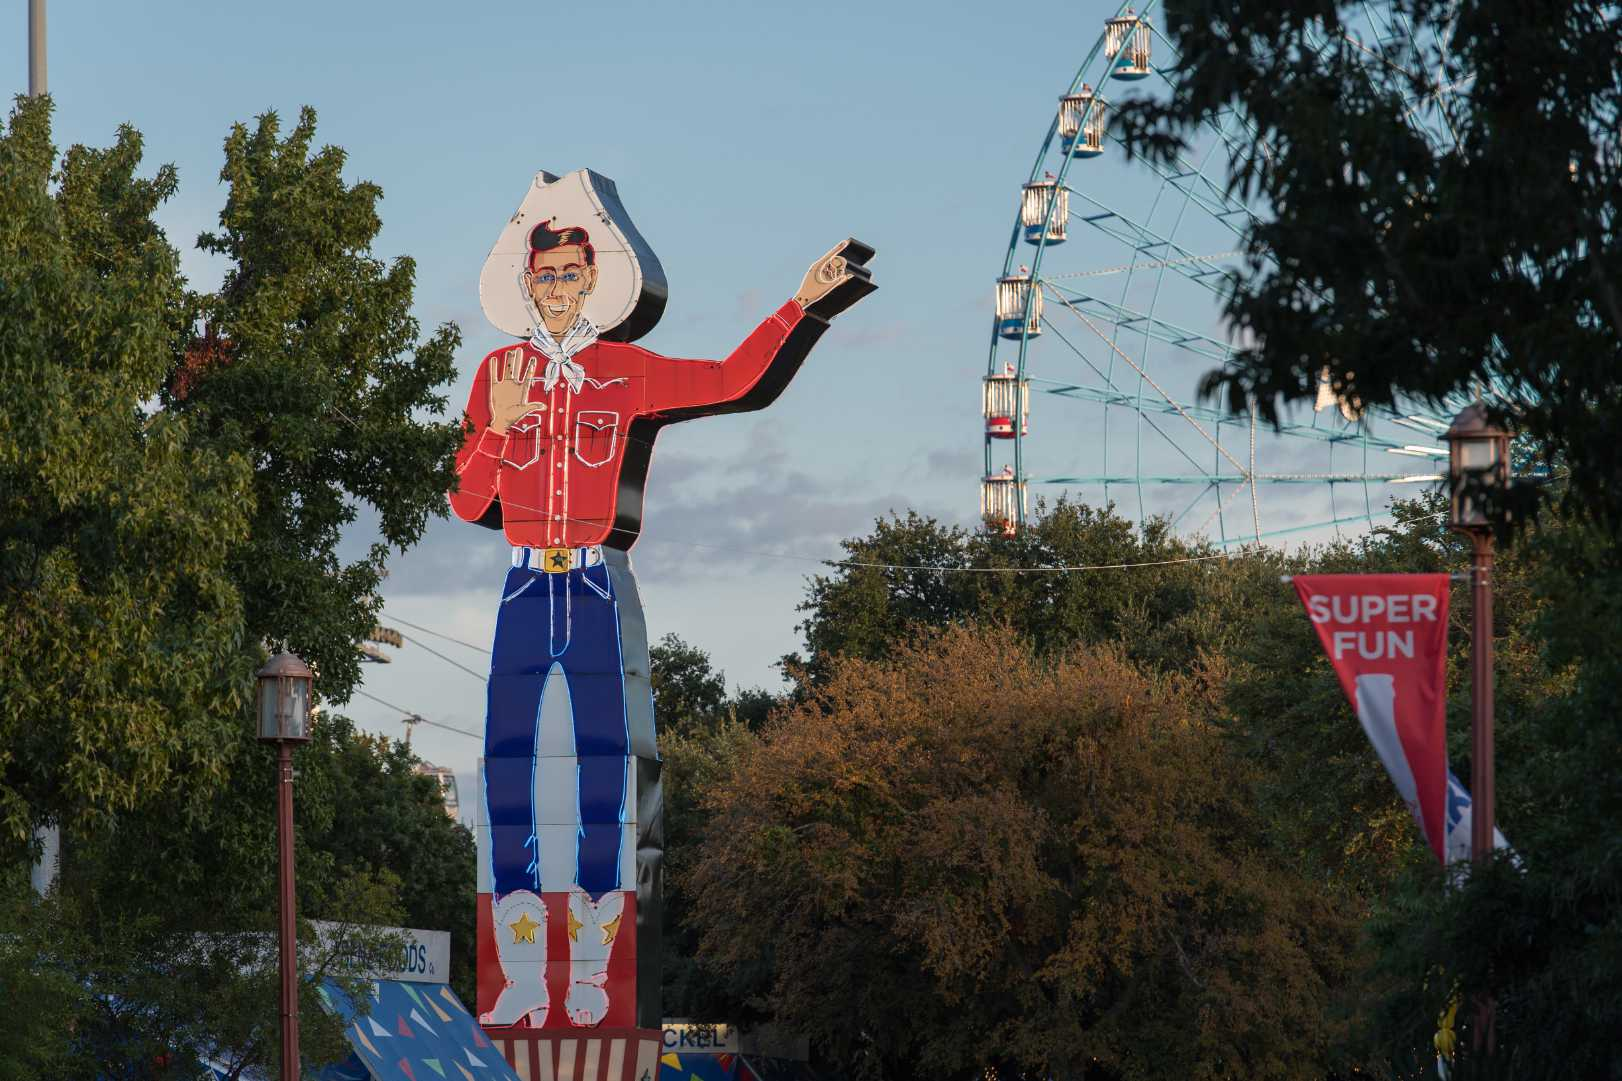 Photo Courtesy of the State Fair of Texas.